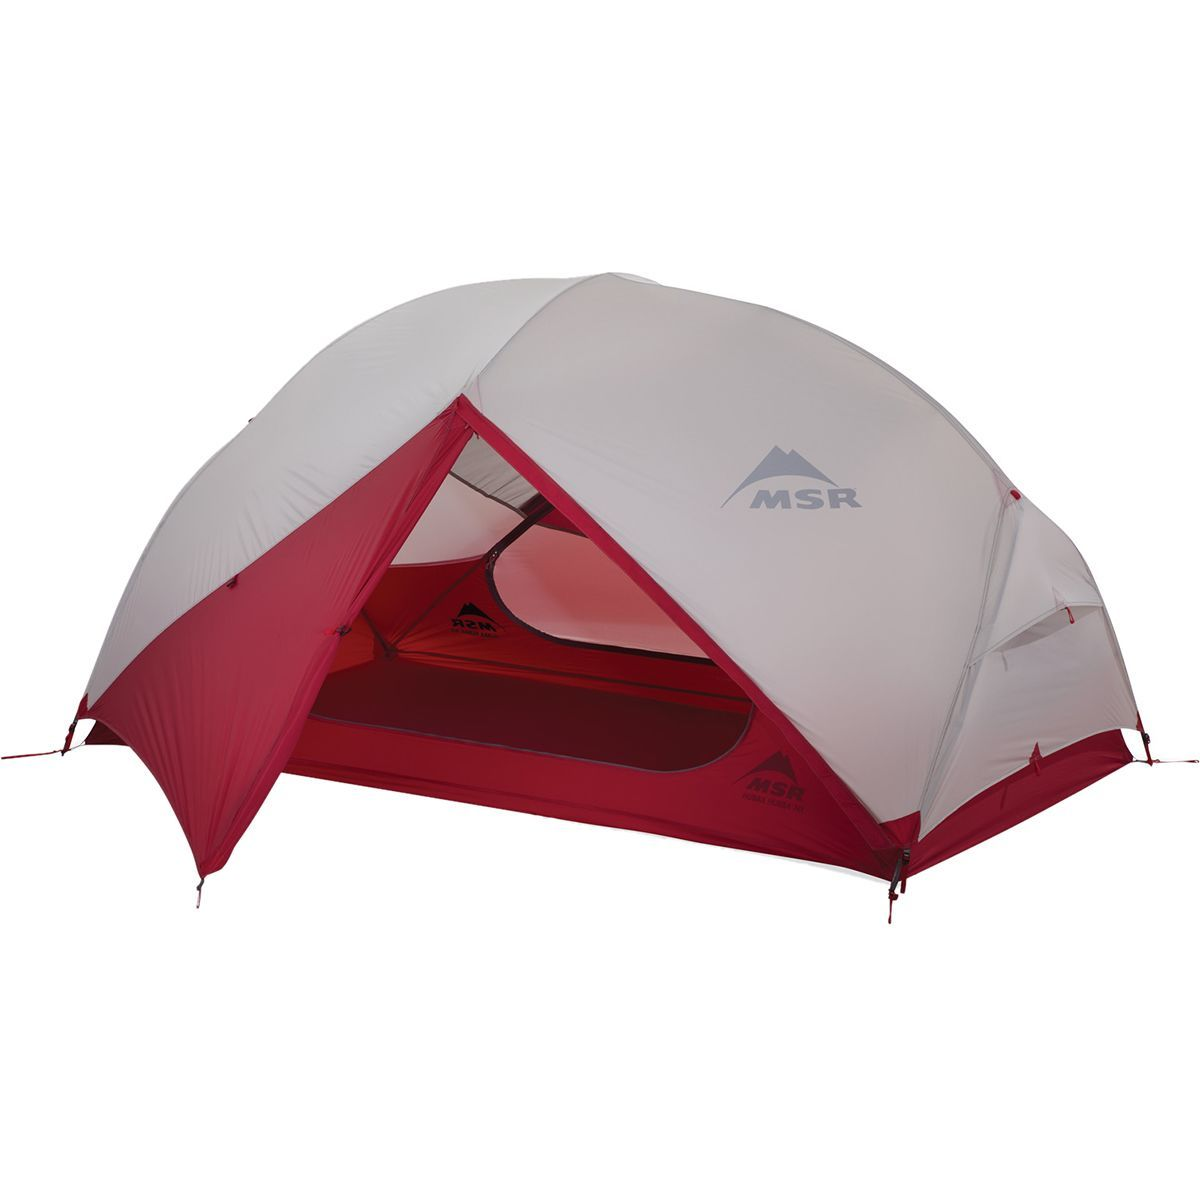 Msr Hubba Hubba Nx Tent 2 Person 3 Season Backpacking Tent Tent